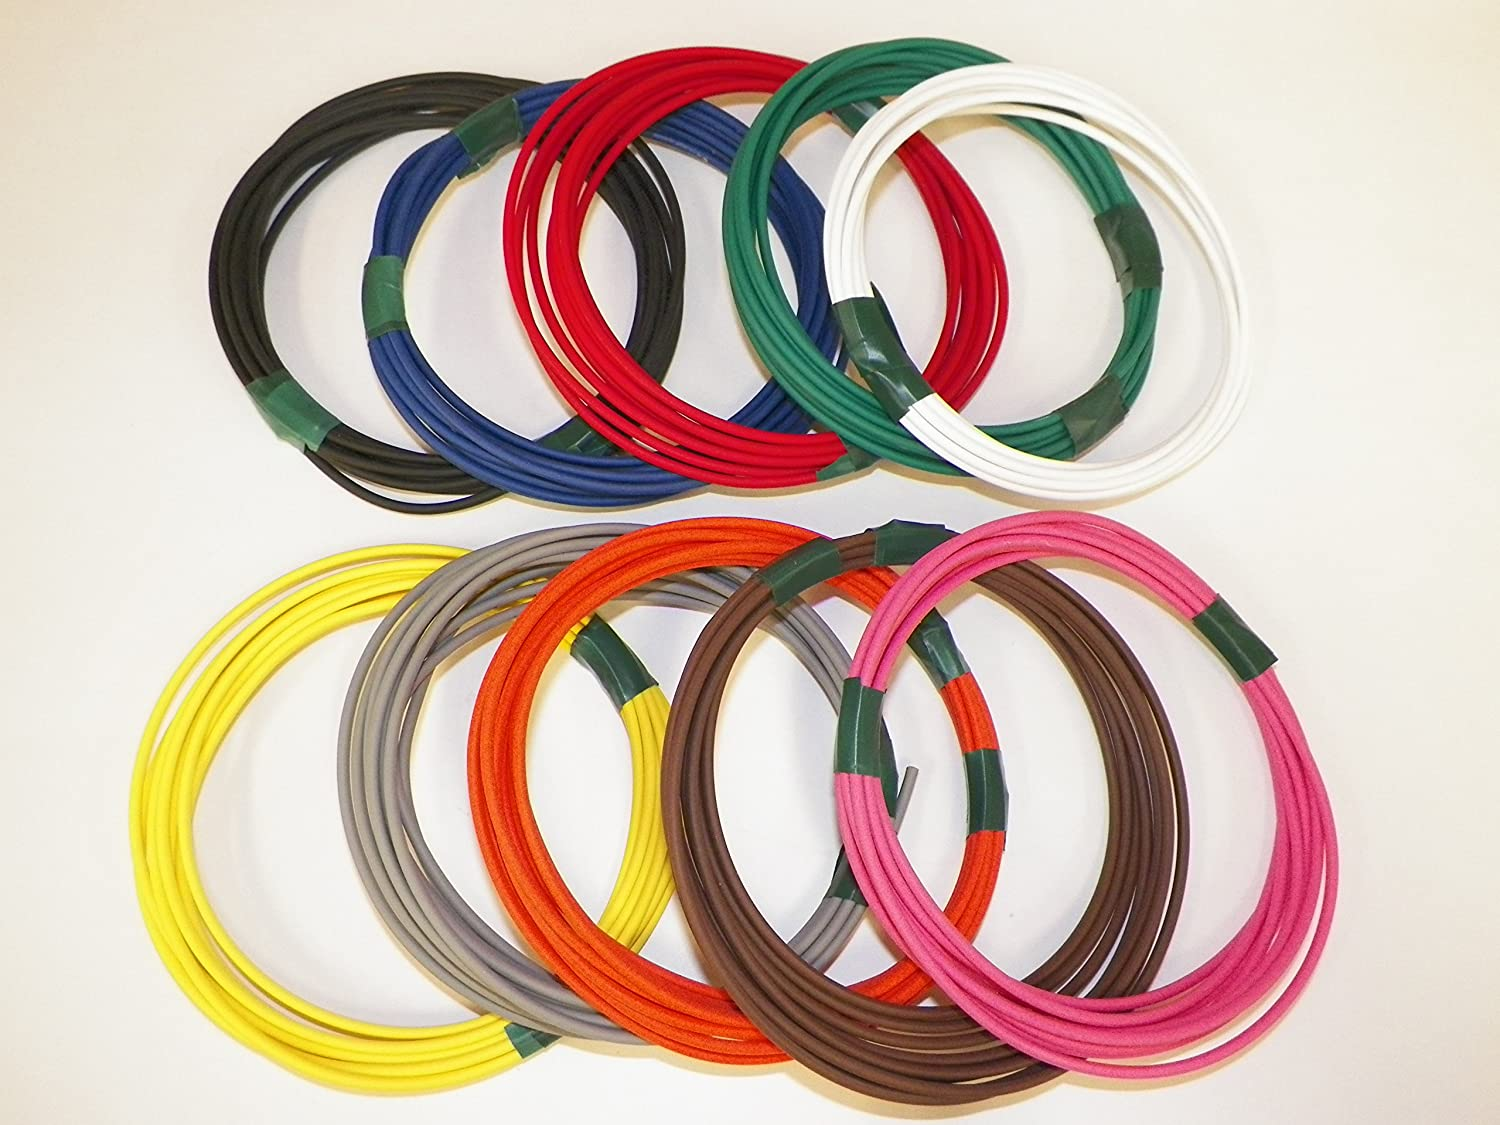 GXL AWG Automotive Copper Wire RV General Purpose Motorcycle Order by 3pm EST Shipped Same Day 10 Colors 25 Each GAUGE Truck 18 GA